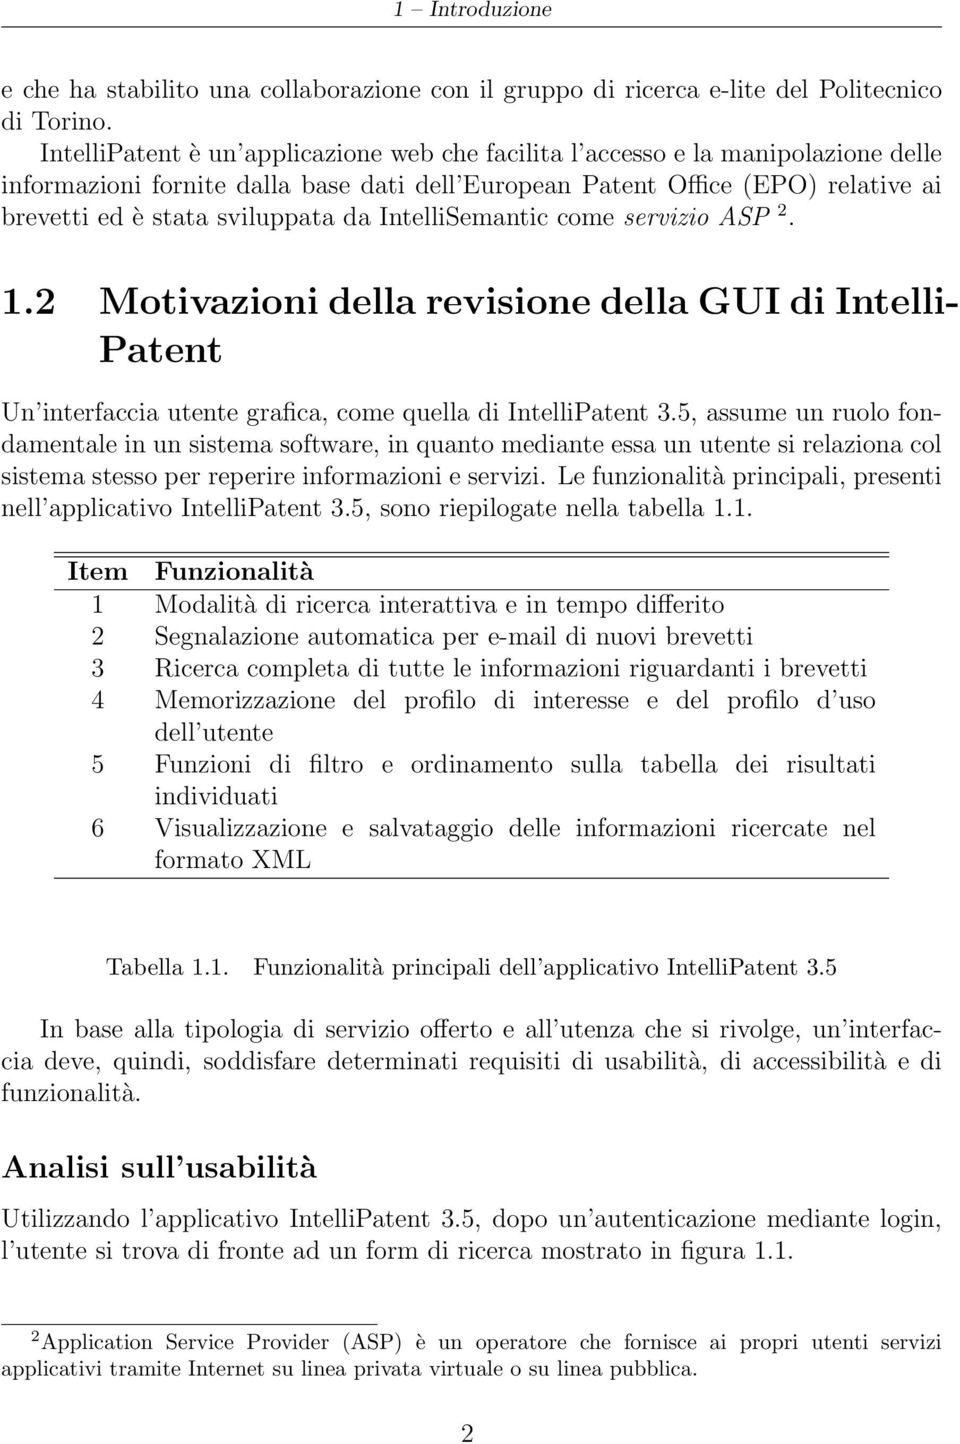 da IntelliSemantic come servizio ASP 2. 1.2 Motivazioni della revisione della GUI di Intelli- Patent Un interfaccia utente grafica, come quella di IntelliPatent 3.